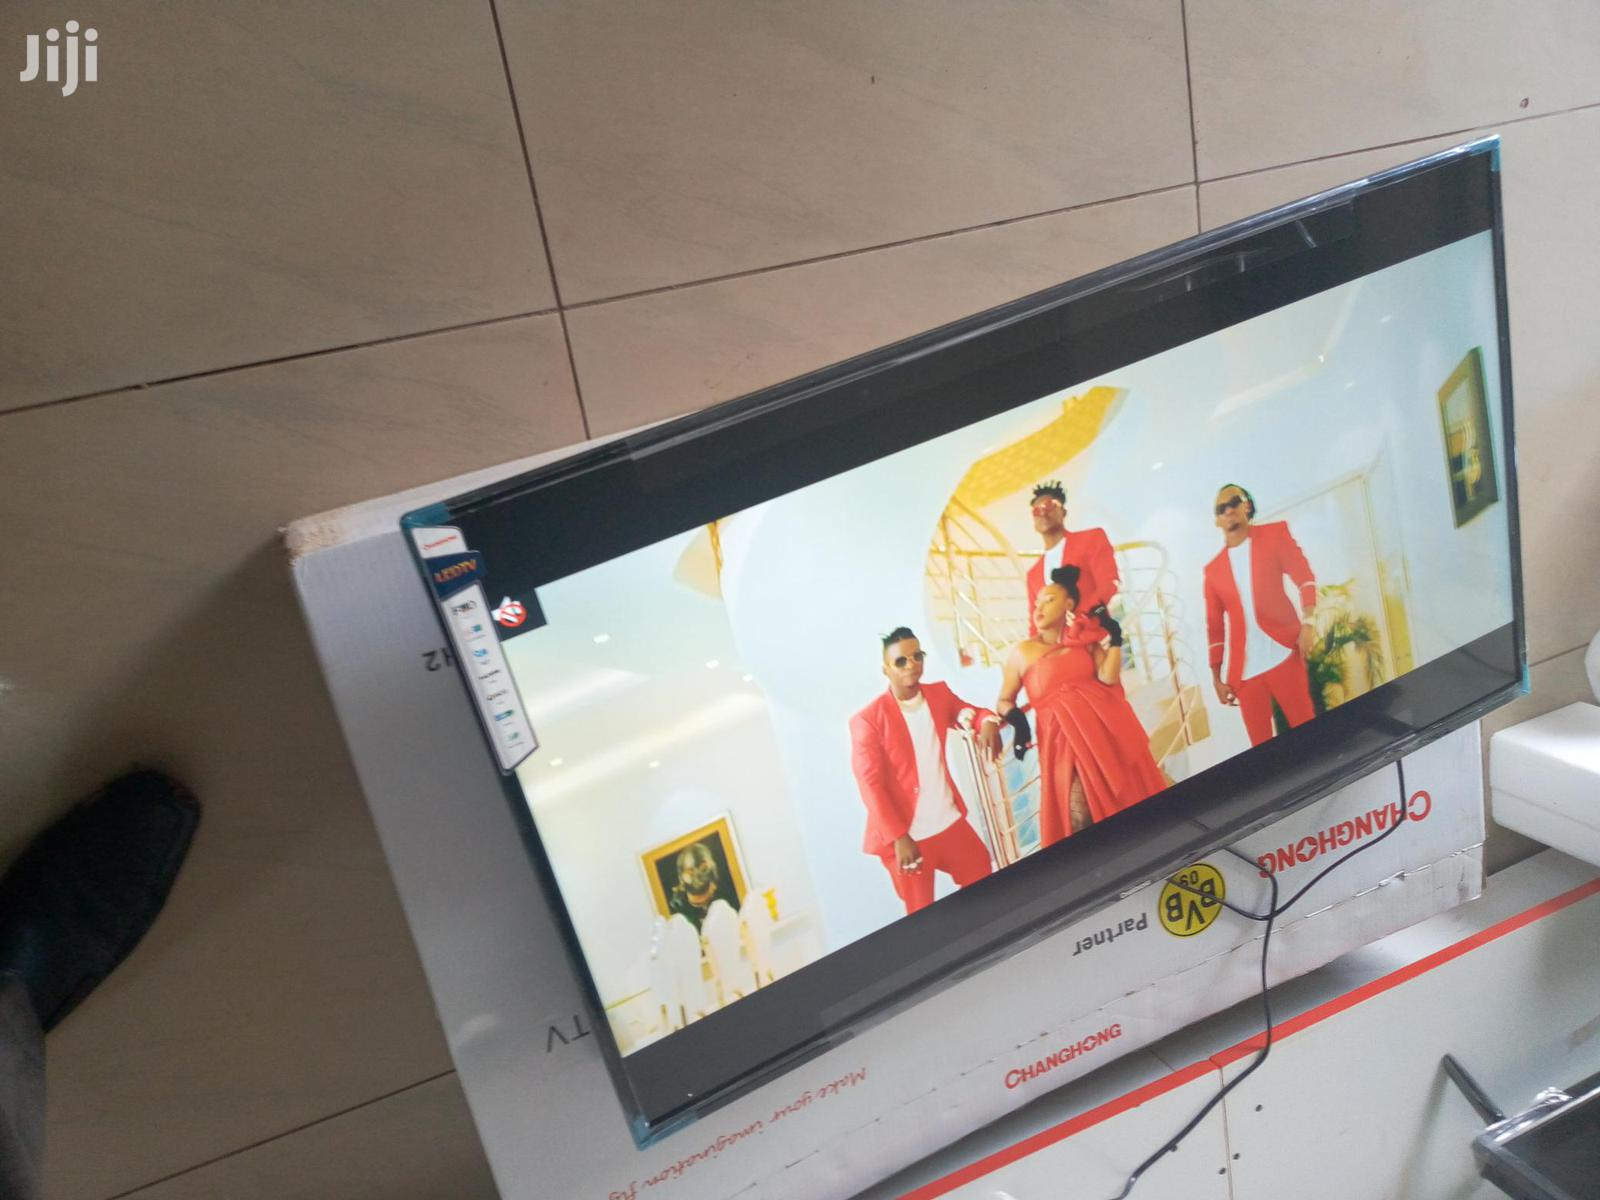 Changhong Digital Tv 40 Inches